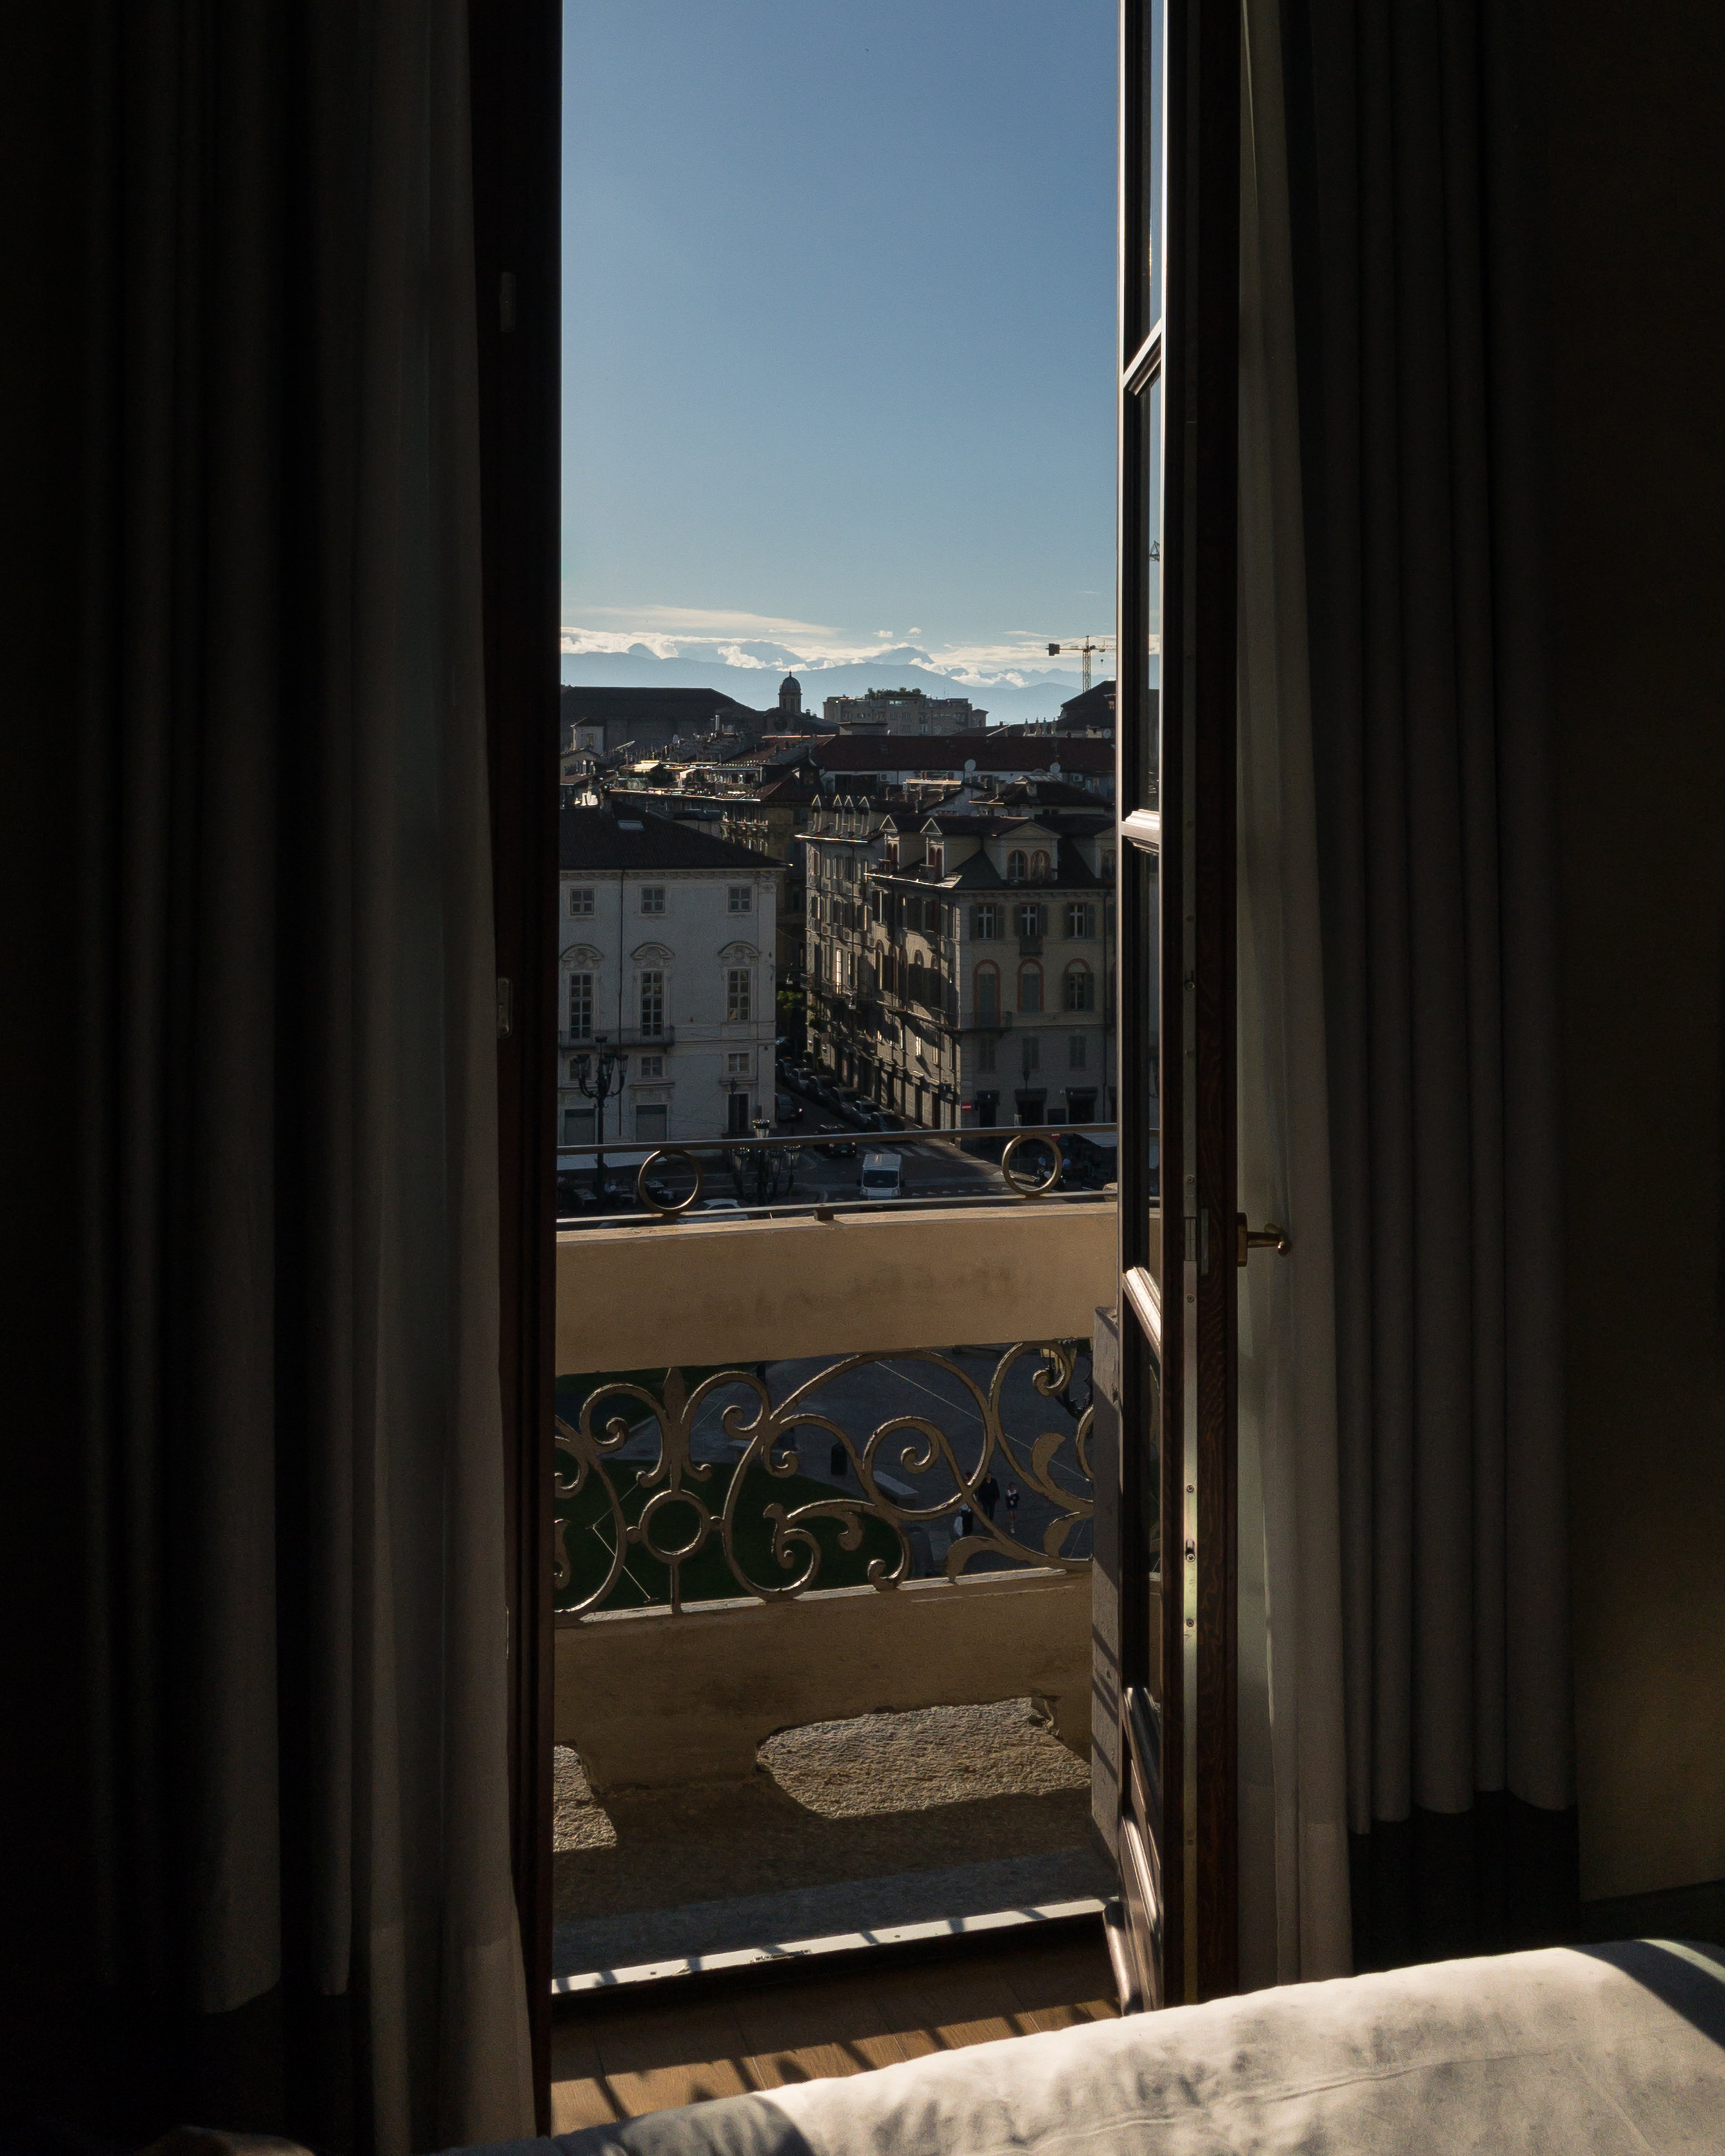 """During our two night stay in Torino, we stayed at the  NH Collection Torino Piazza Carlina . It was in a great location and the room was spacious with a modern and minimal design aesthetic. Right outside the door to our room was a balcony that overlooked an interior courtyard and lounge chairs available to hang out on. There's a mini tour of our room on my IG """"Italy"""" highlights reel if you want to see more. Breakfast was included, which was nice - one less meal to not have to worry about. This hotel was the perfect place to lay my pretty little head down each night."""